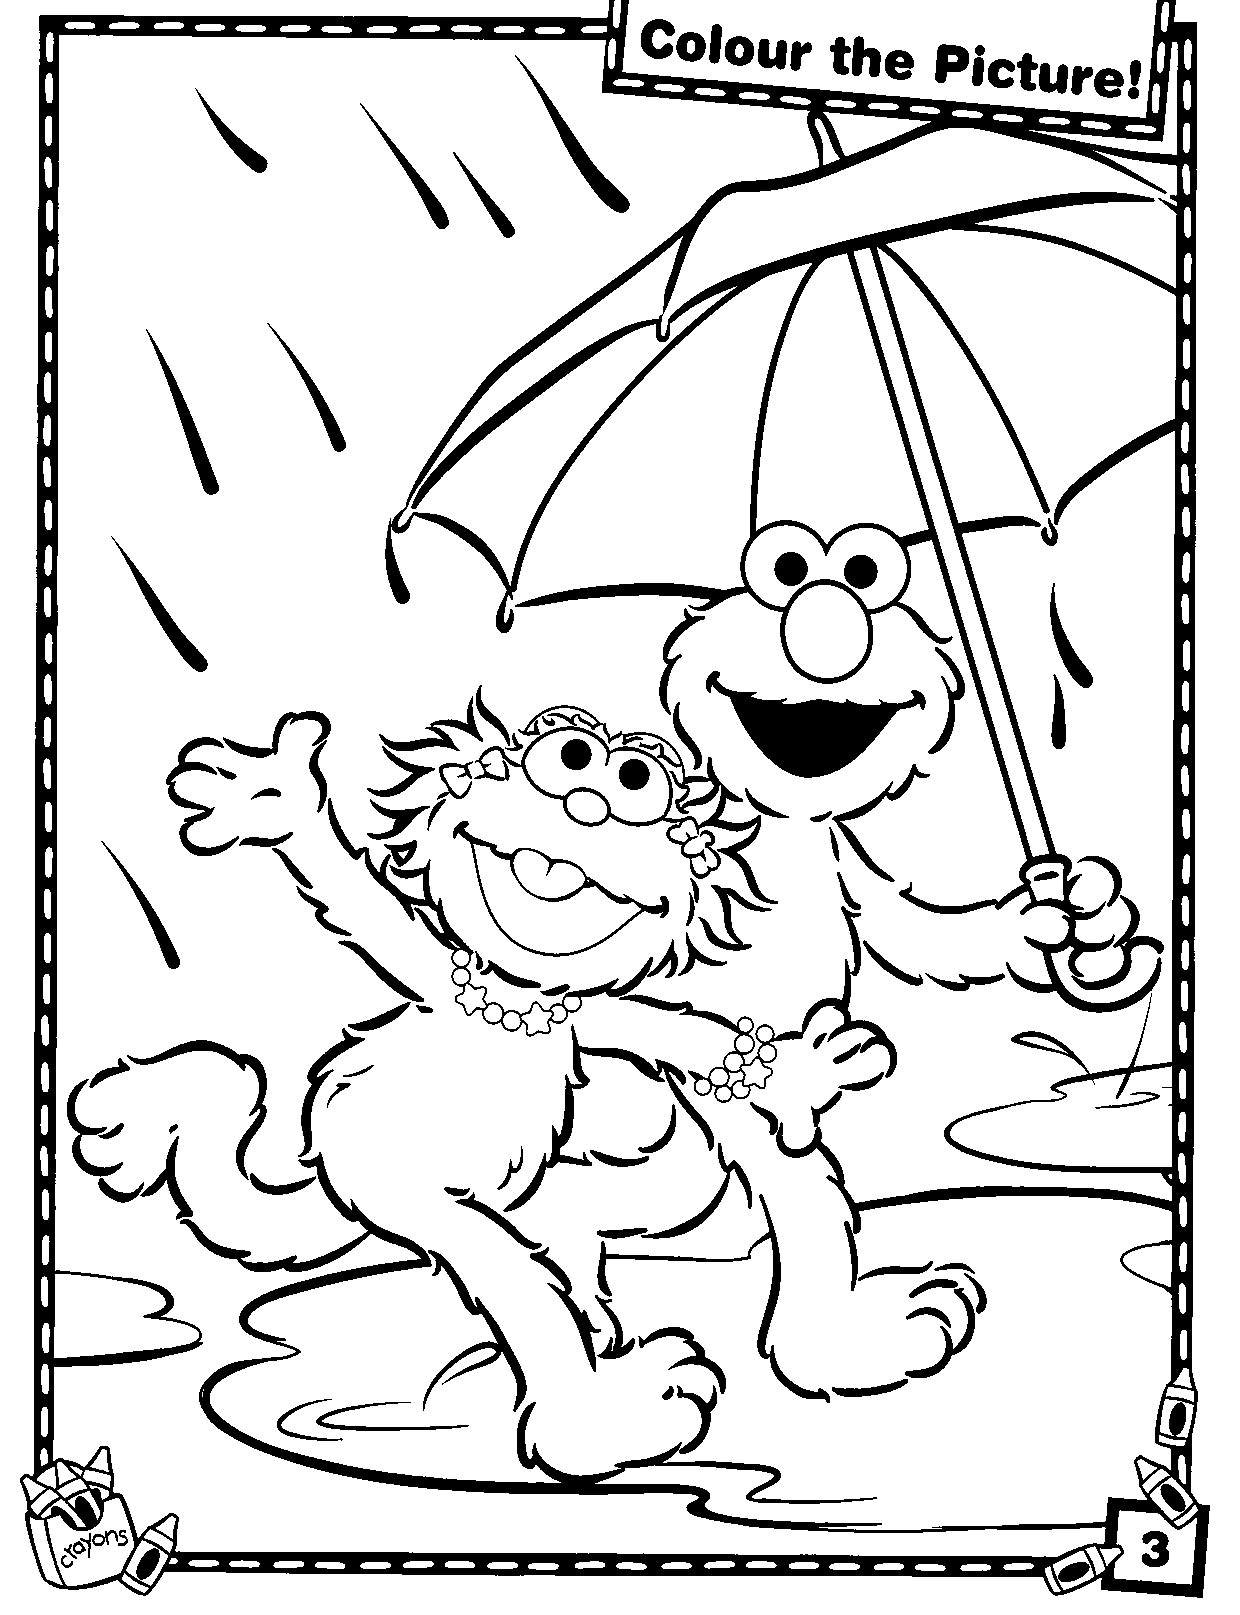 zoe from sesame street coloring pages pr energy